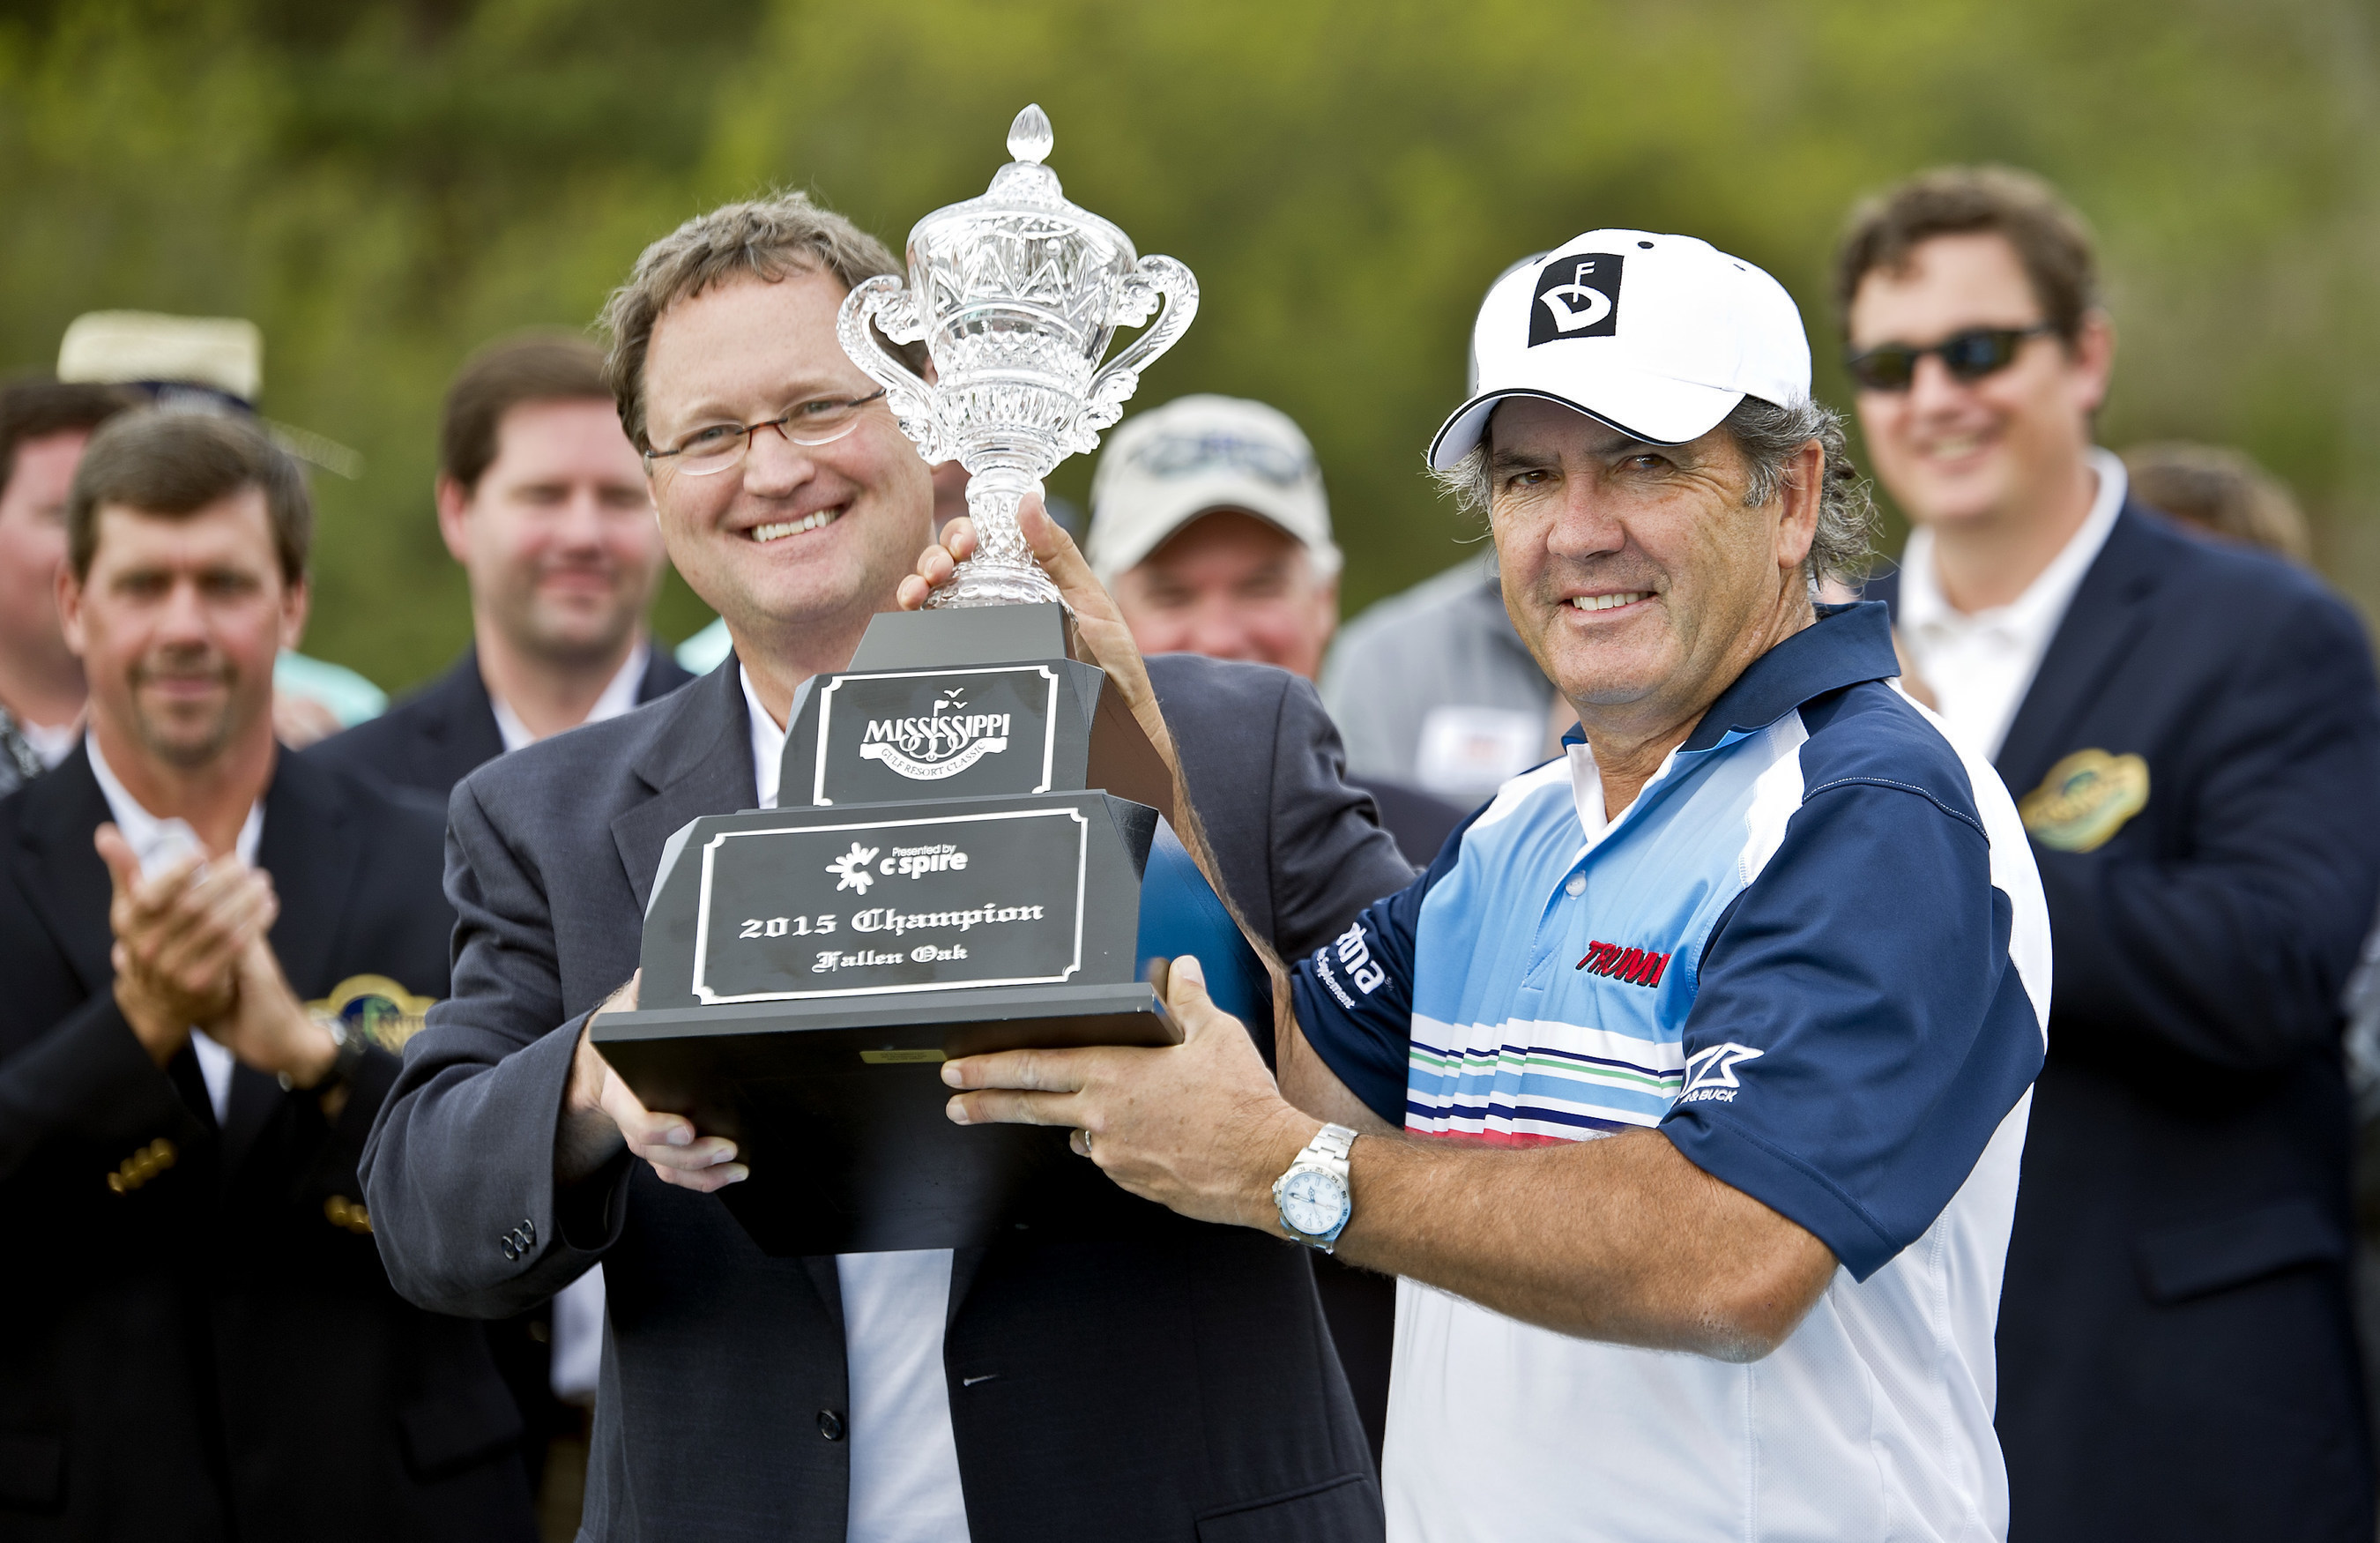 David Frost set to defend title at 2016 Mississippi Gulf Resort Classic; Mississippi-based telecom, tech giant C Spire presenting sponsor